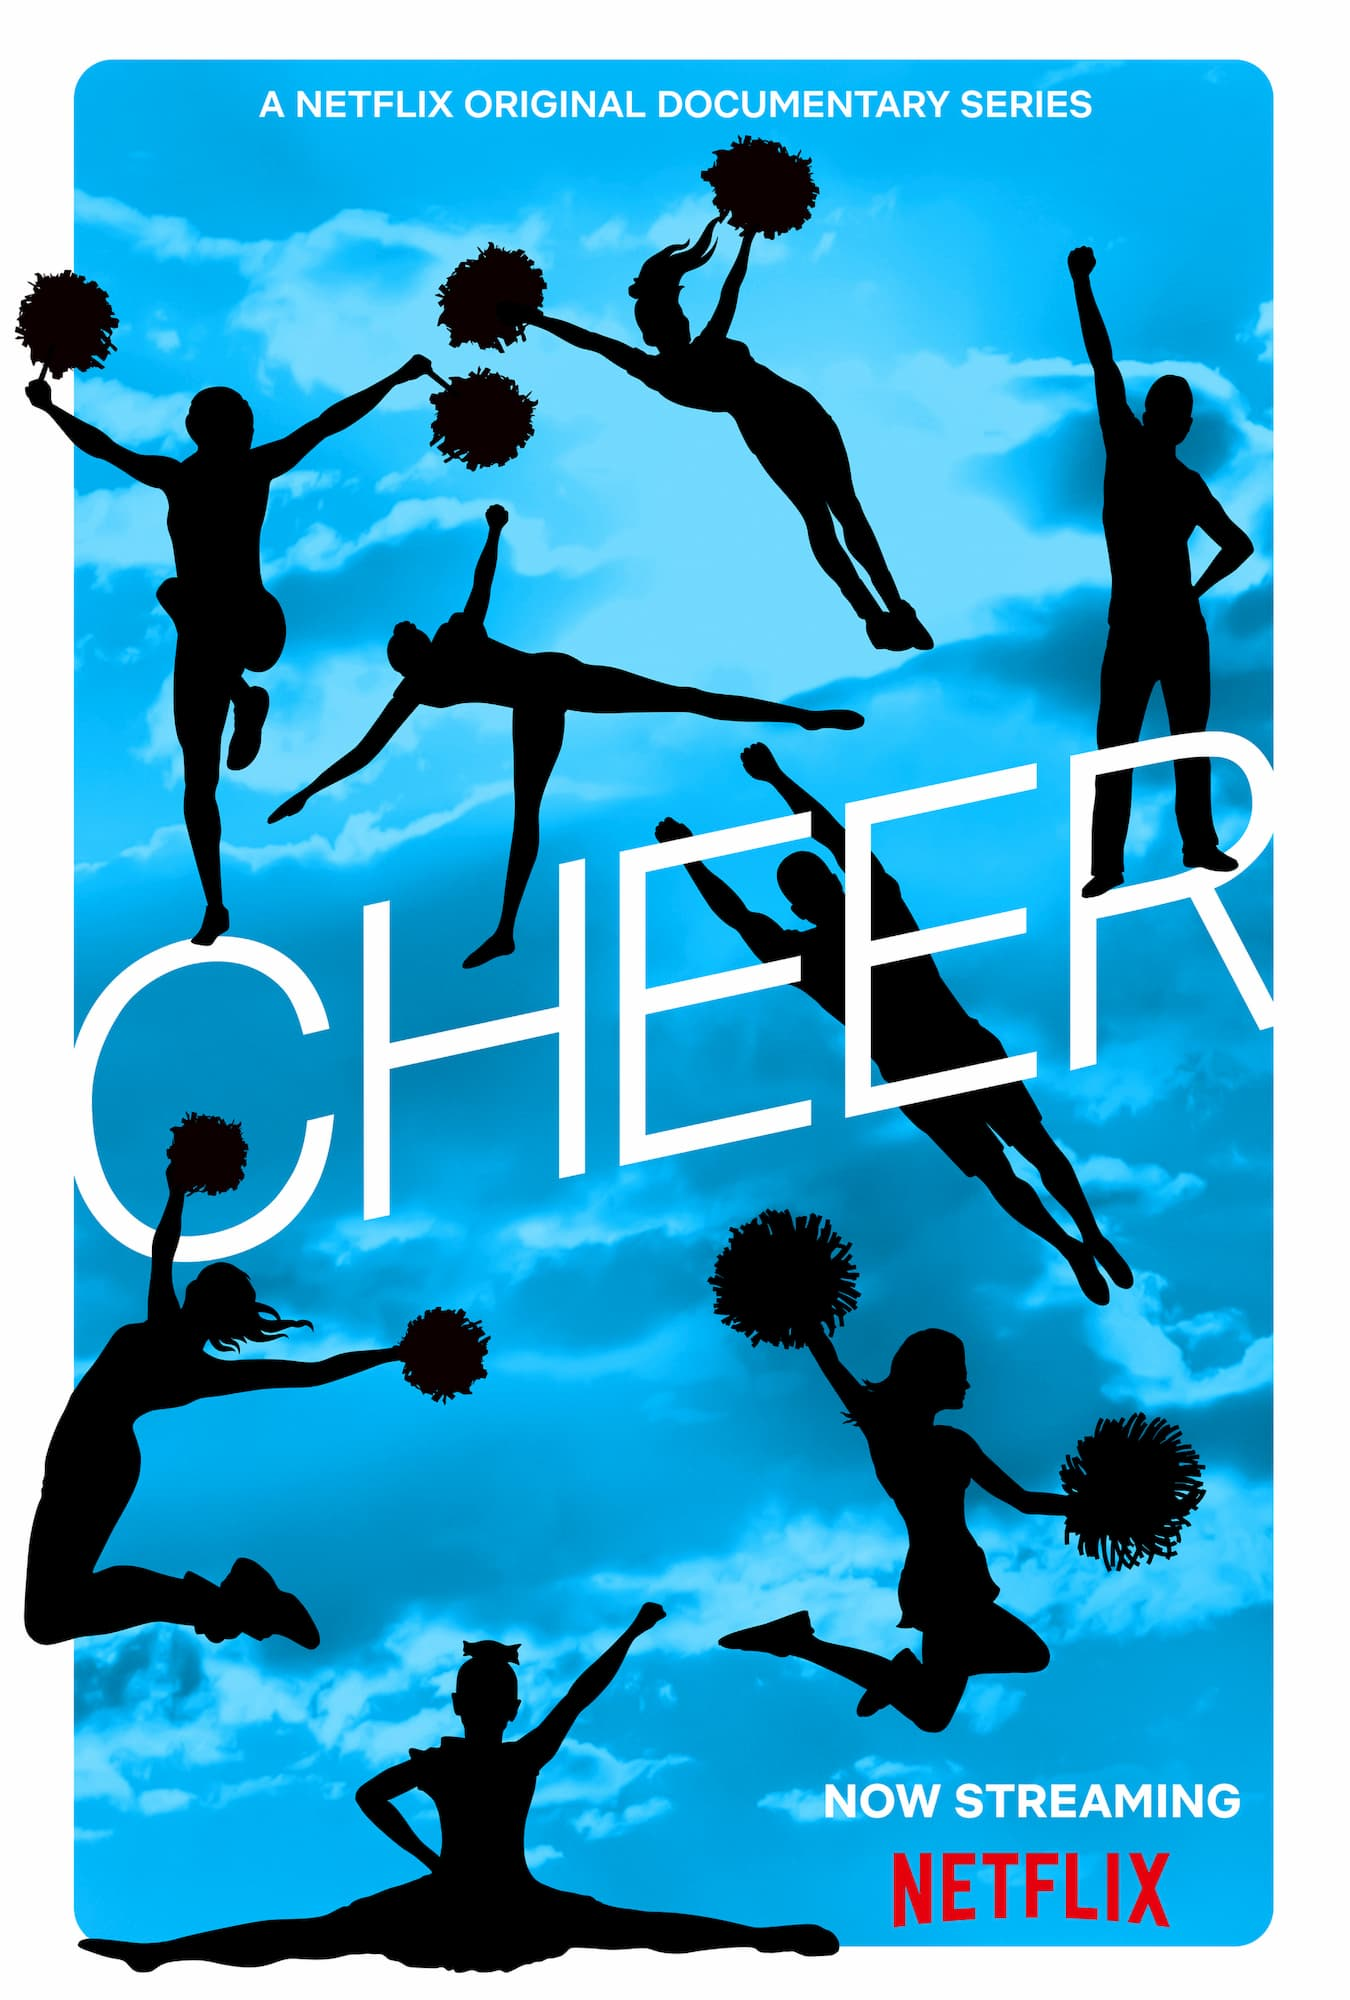 image from Cheer